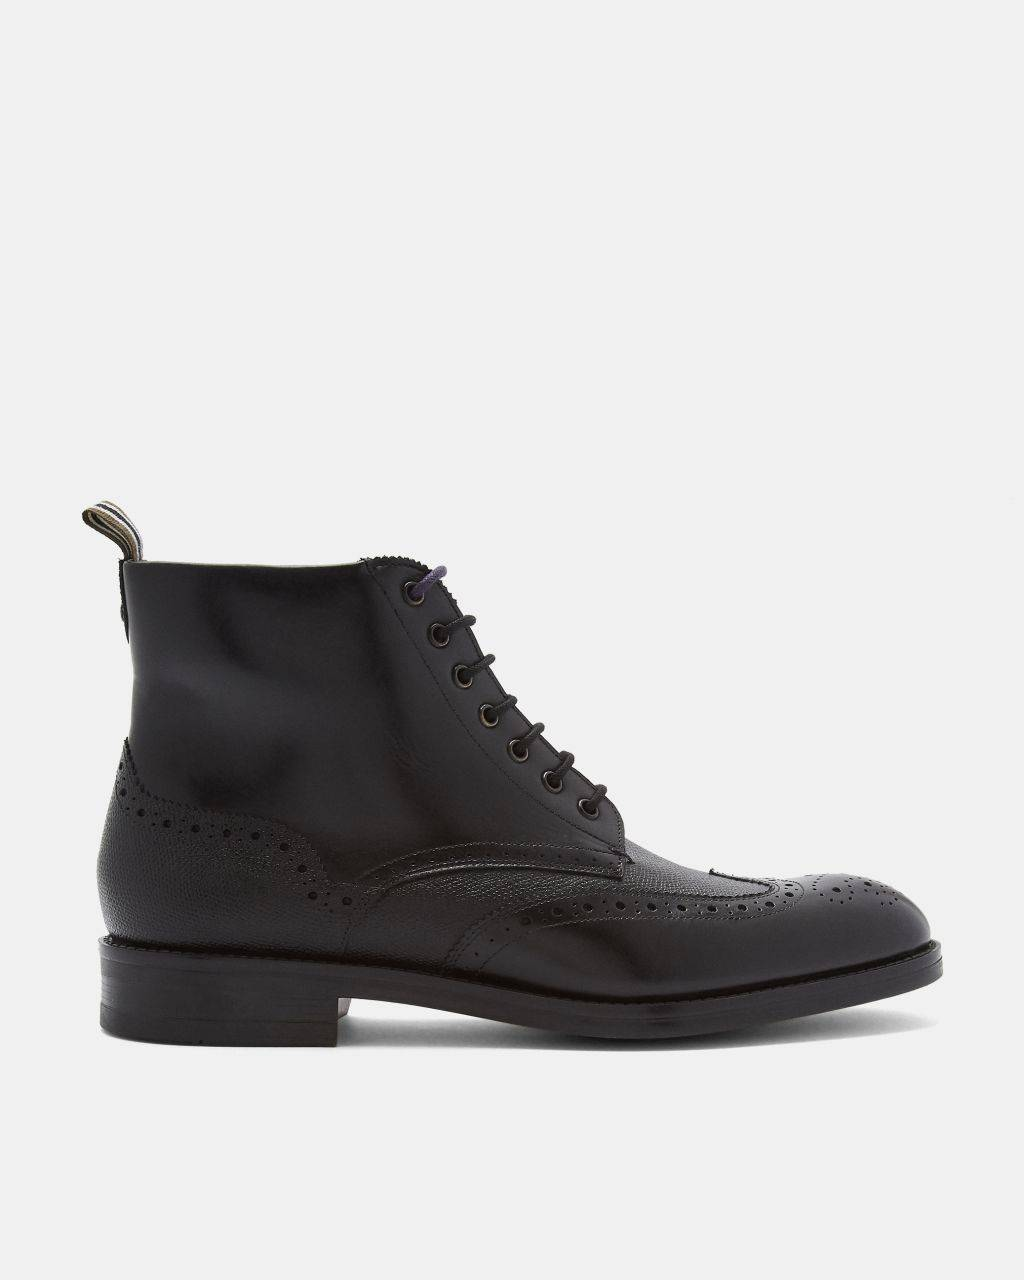 Ted Baker Leather Brogue Detail Lace Up Boots  - Black - Size: UK 8 (EU 42)